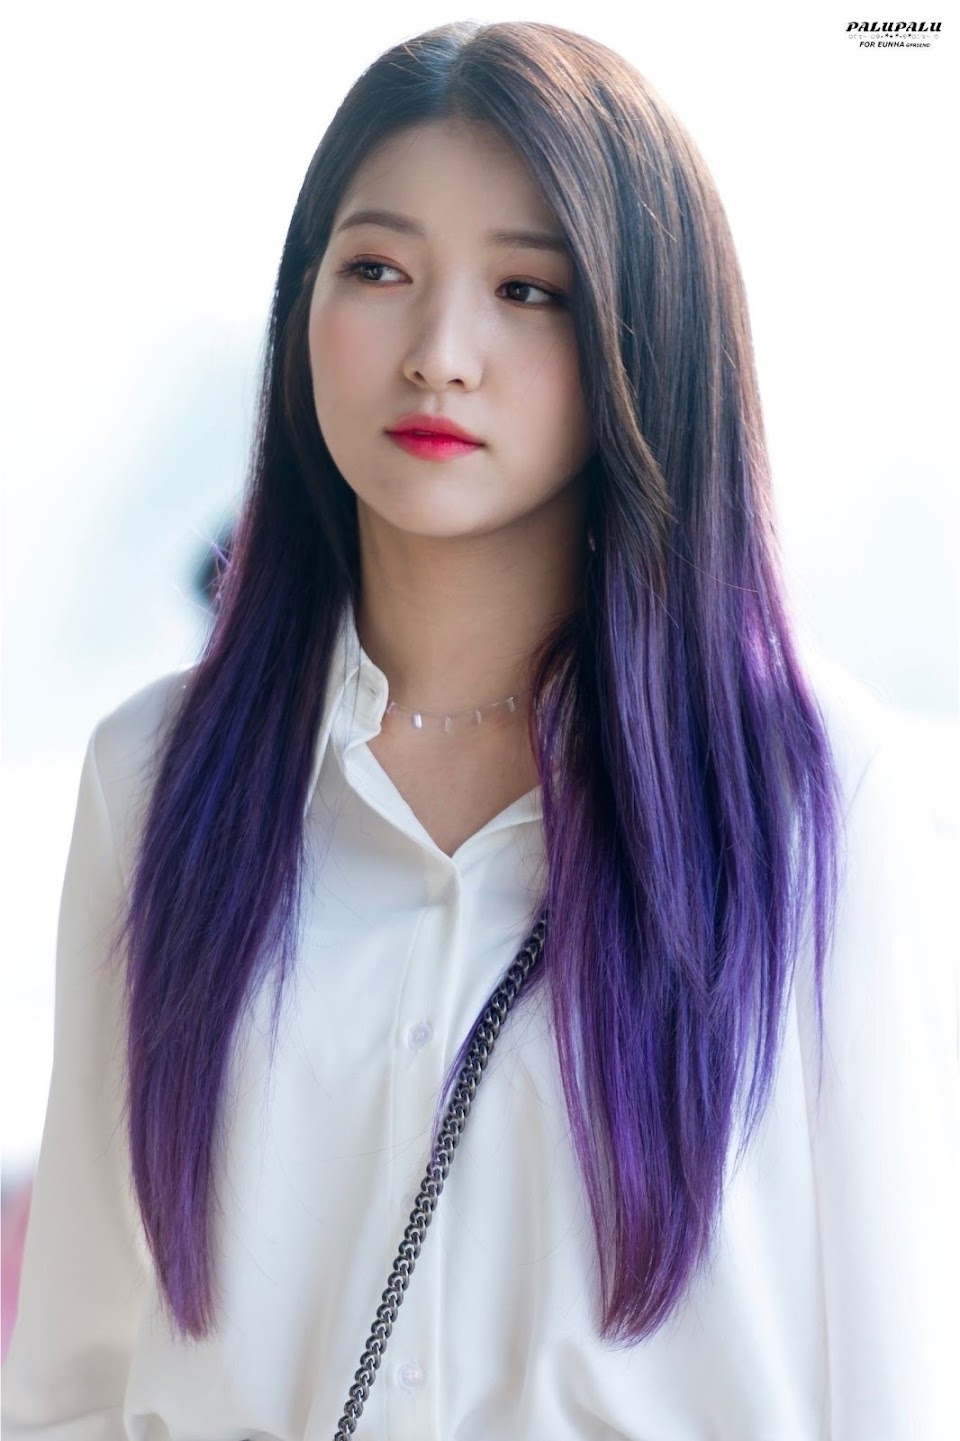 sowon casual 40